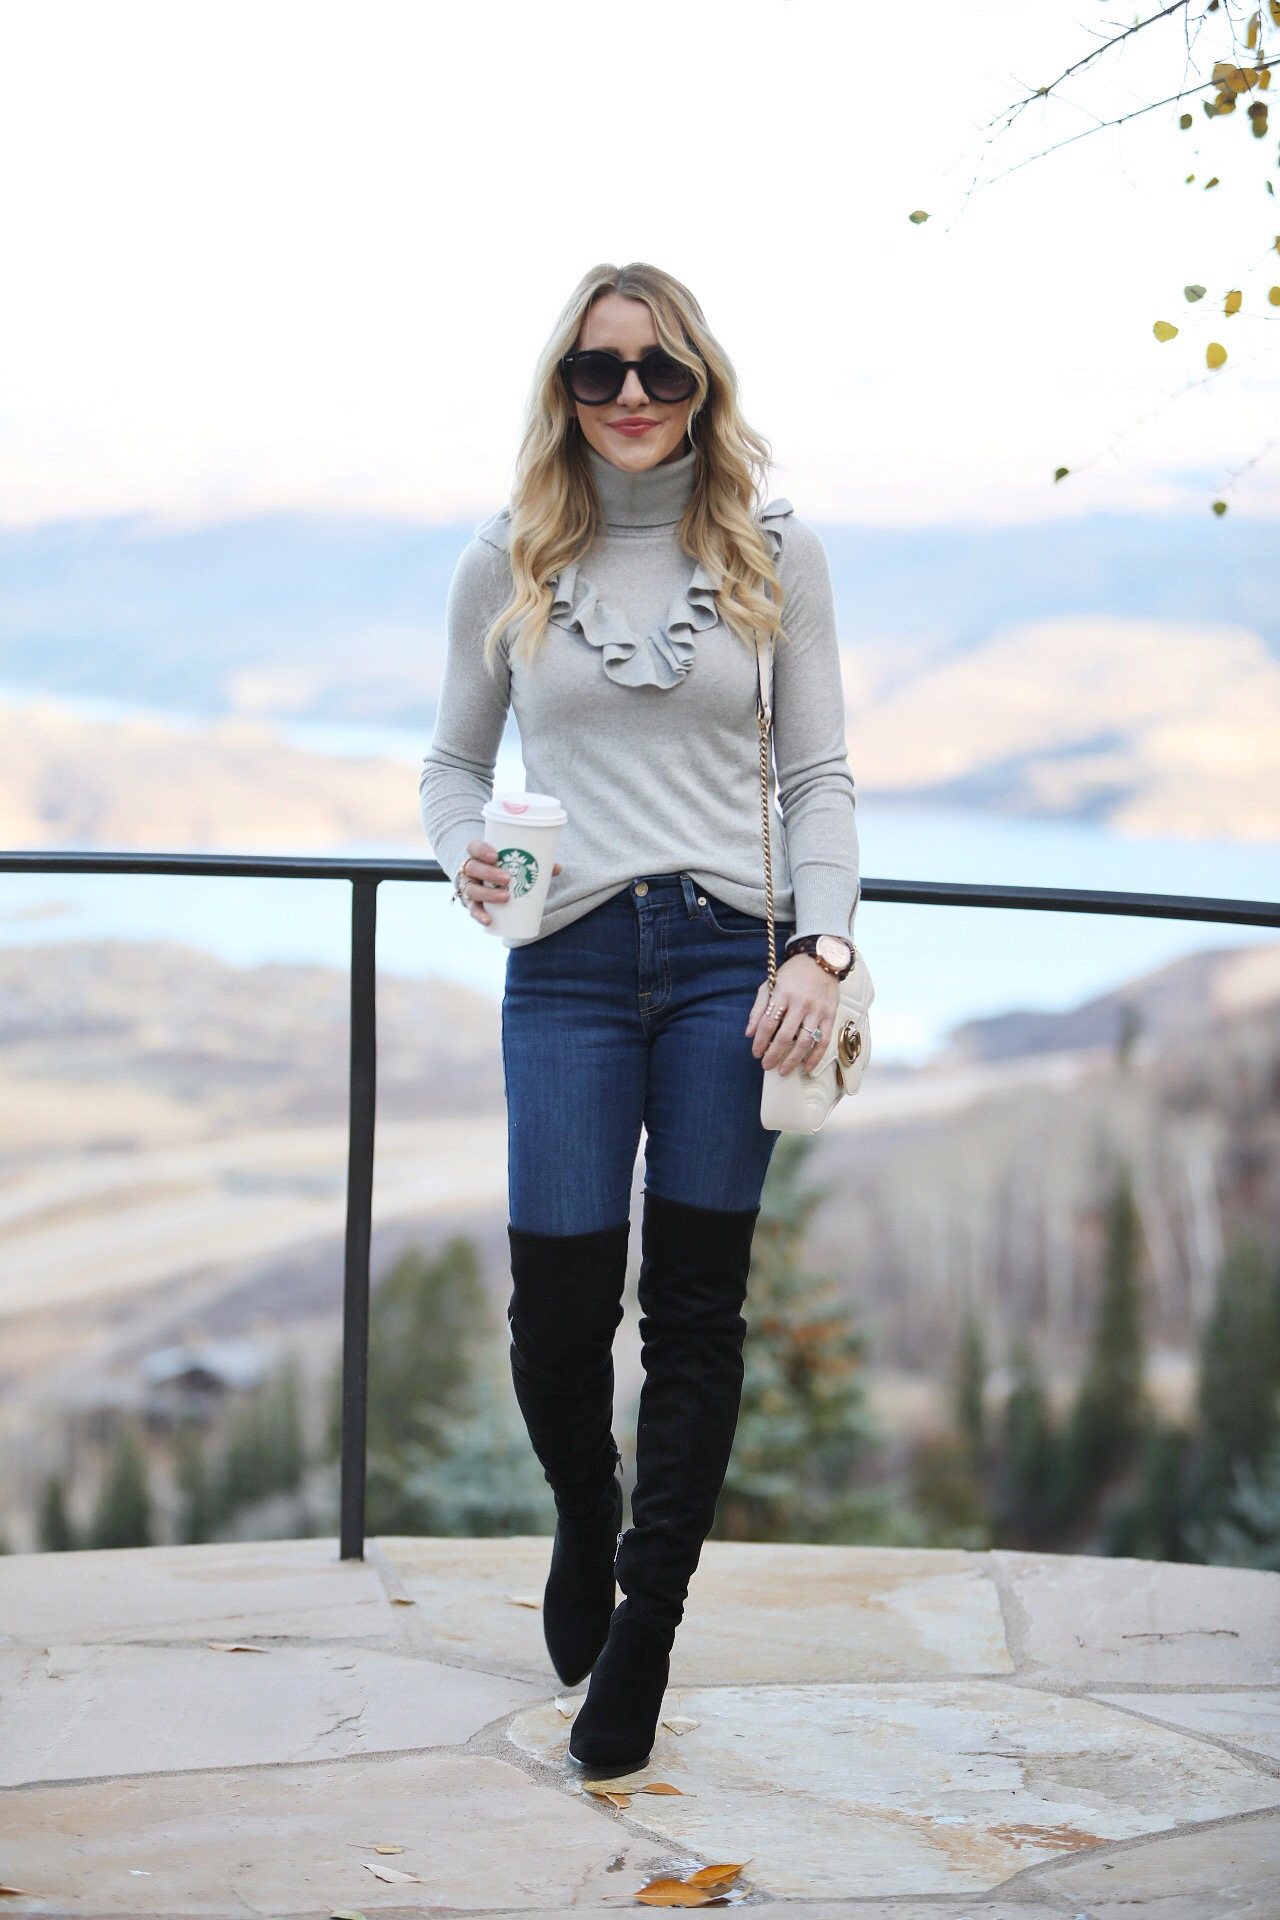 Happy Thanksgiving - My Thanksgiving Outfit by San Francisco fashion blogger For the Love